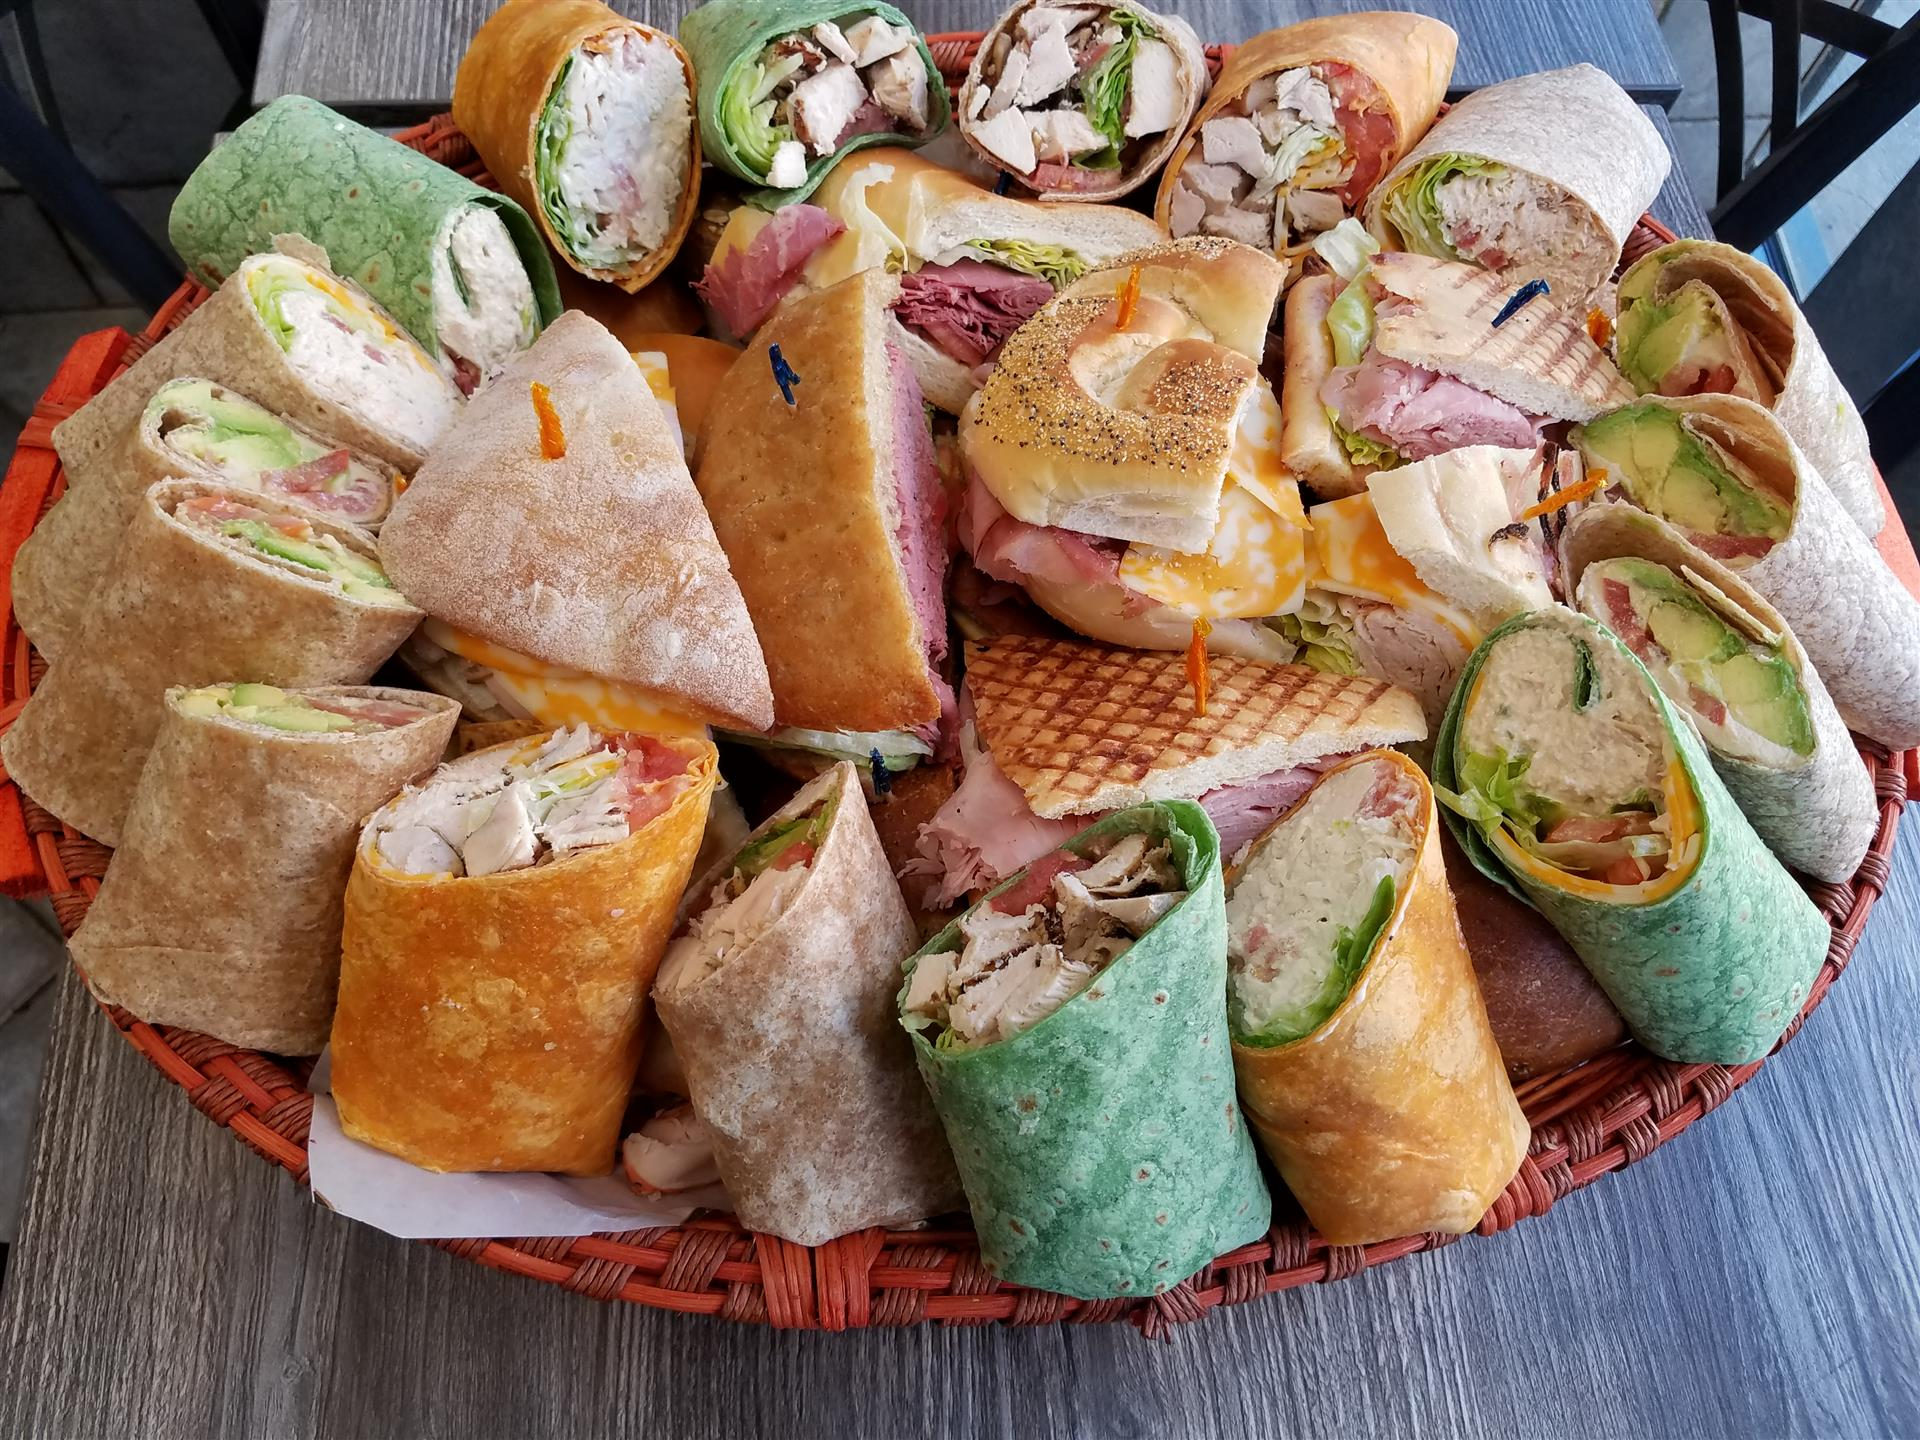 assortment of wraps and paninis